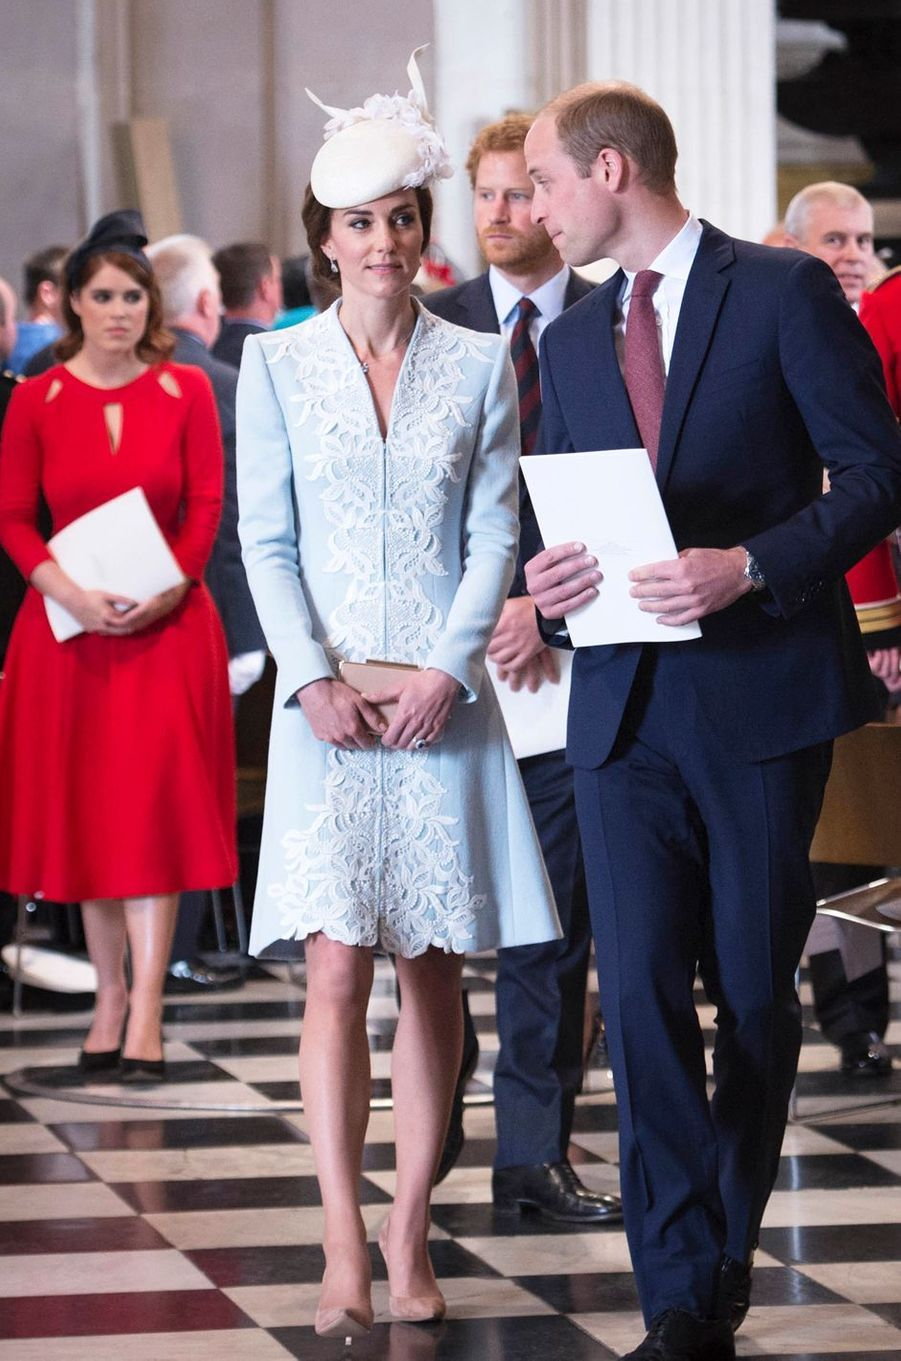 La duchesse Catherine de Cambridge avec le prince William à Londres, le 10 juin 2016